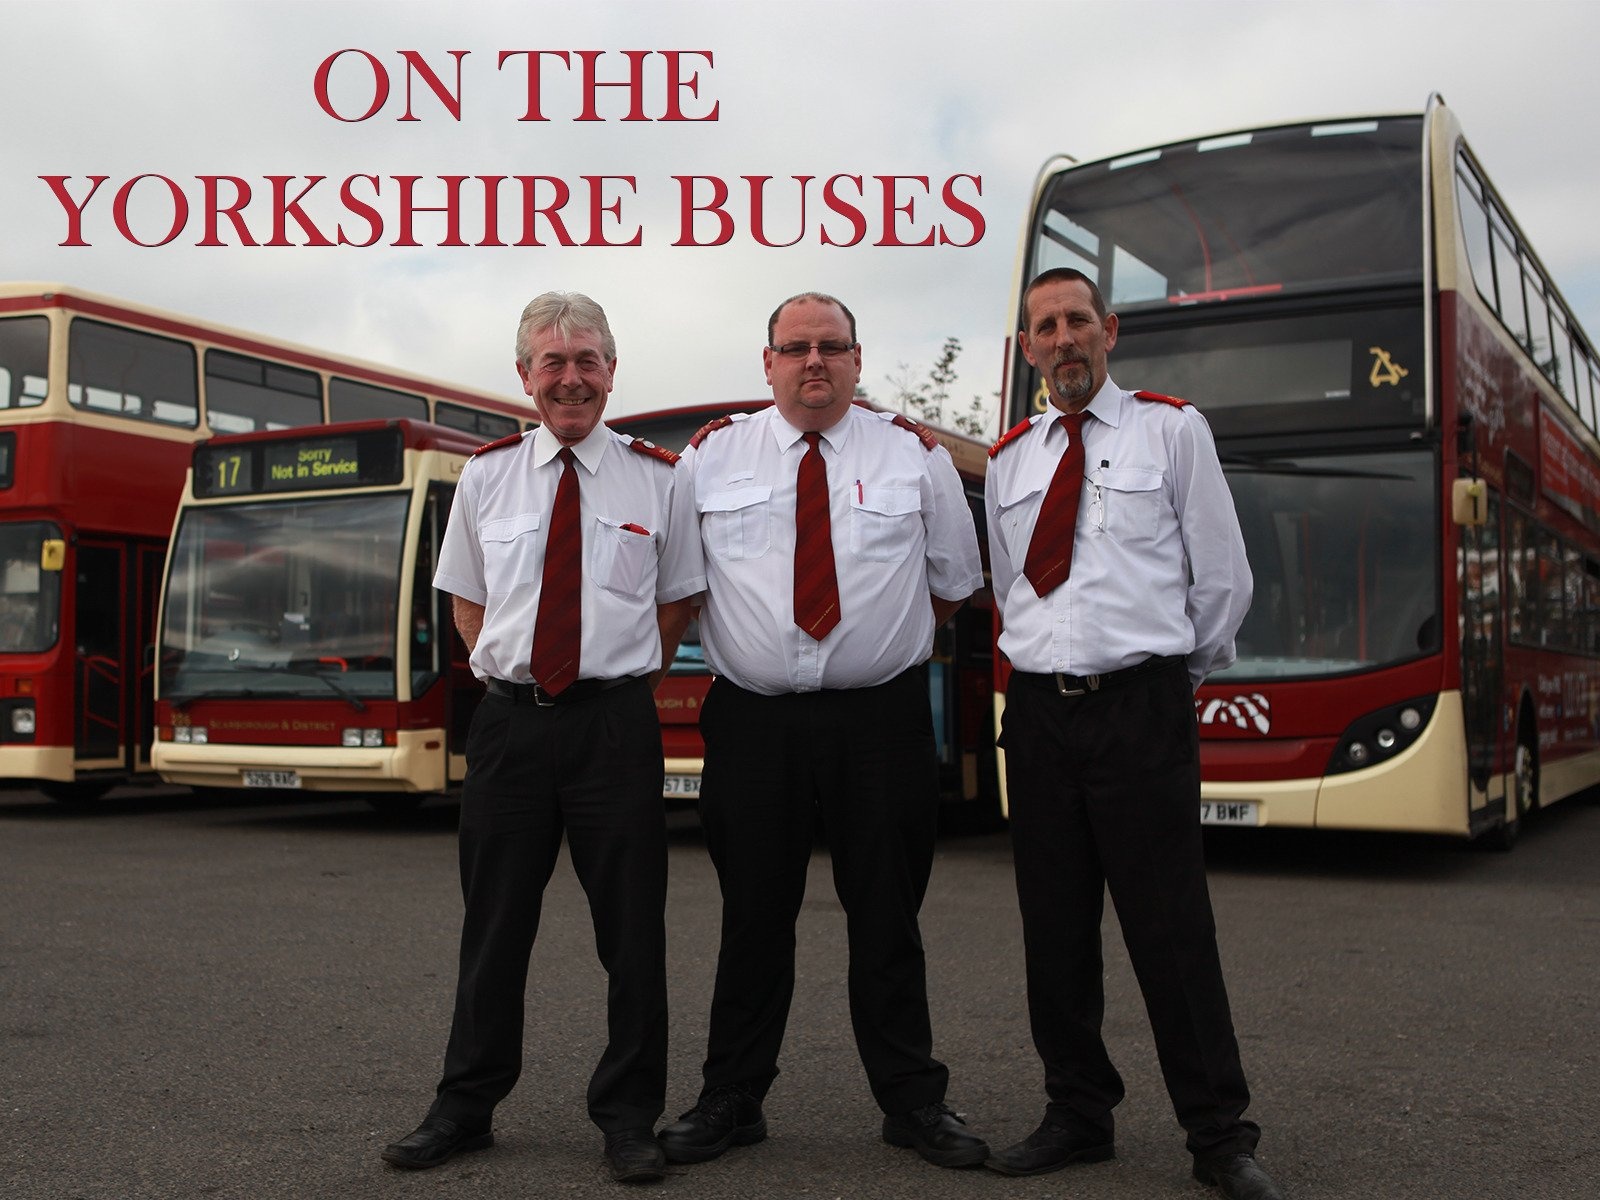 On the Yorkshire Buses - Season 1